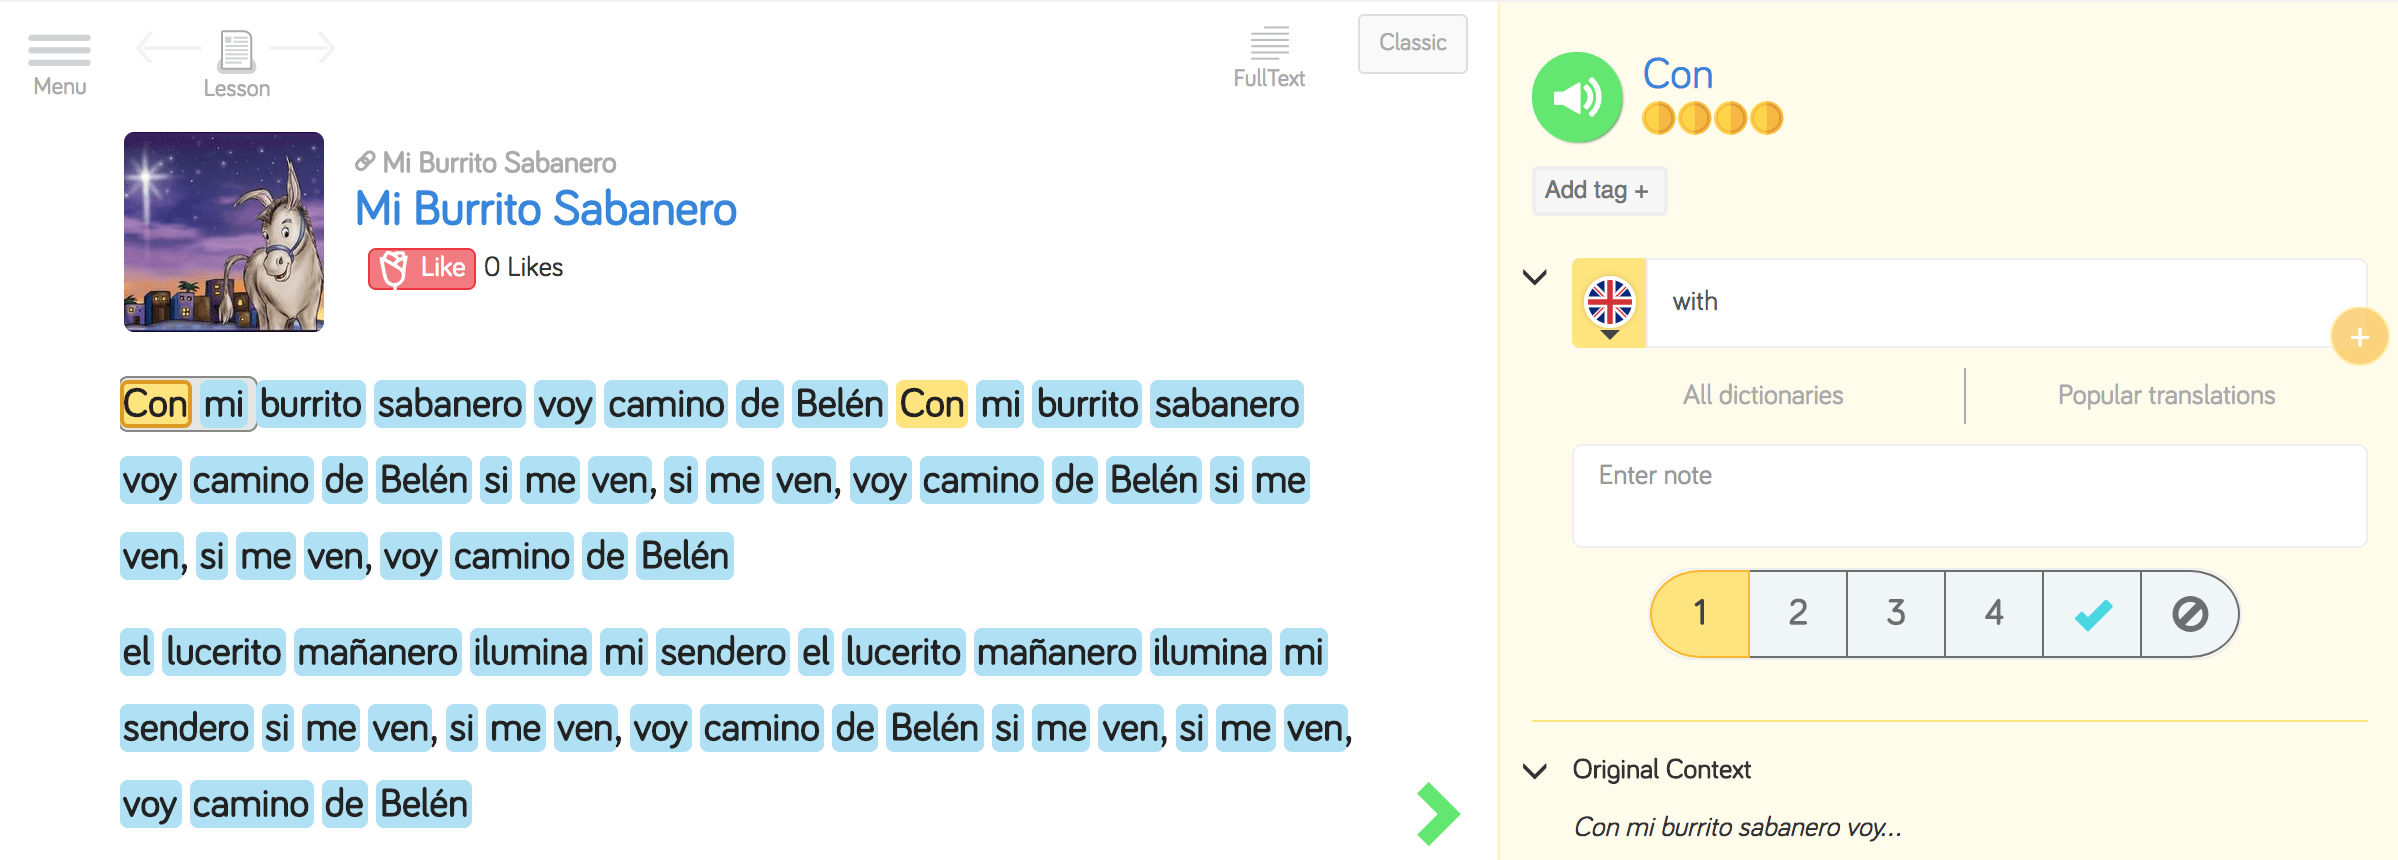 Learn Spanish on LingQ